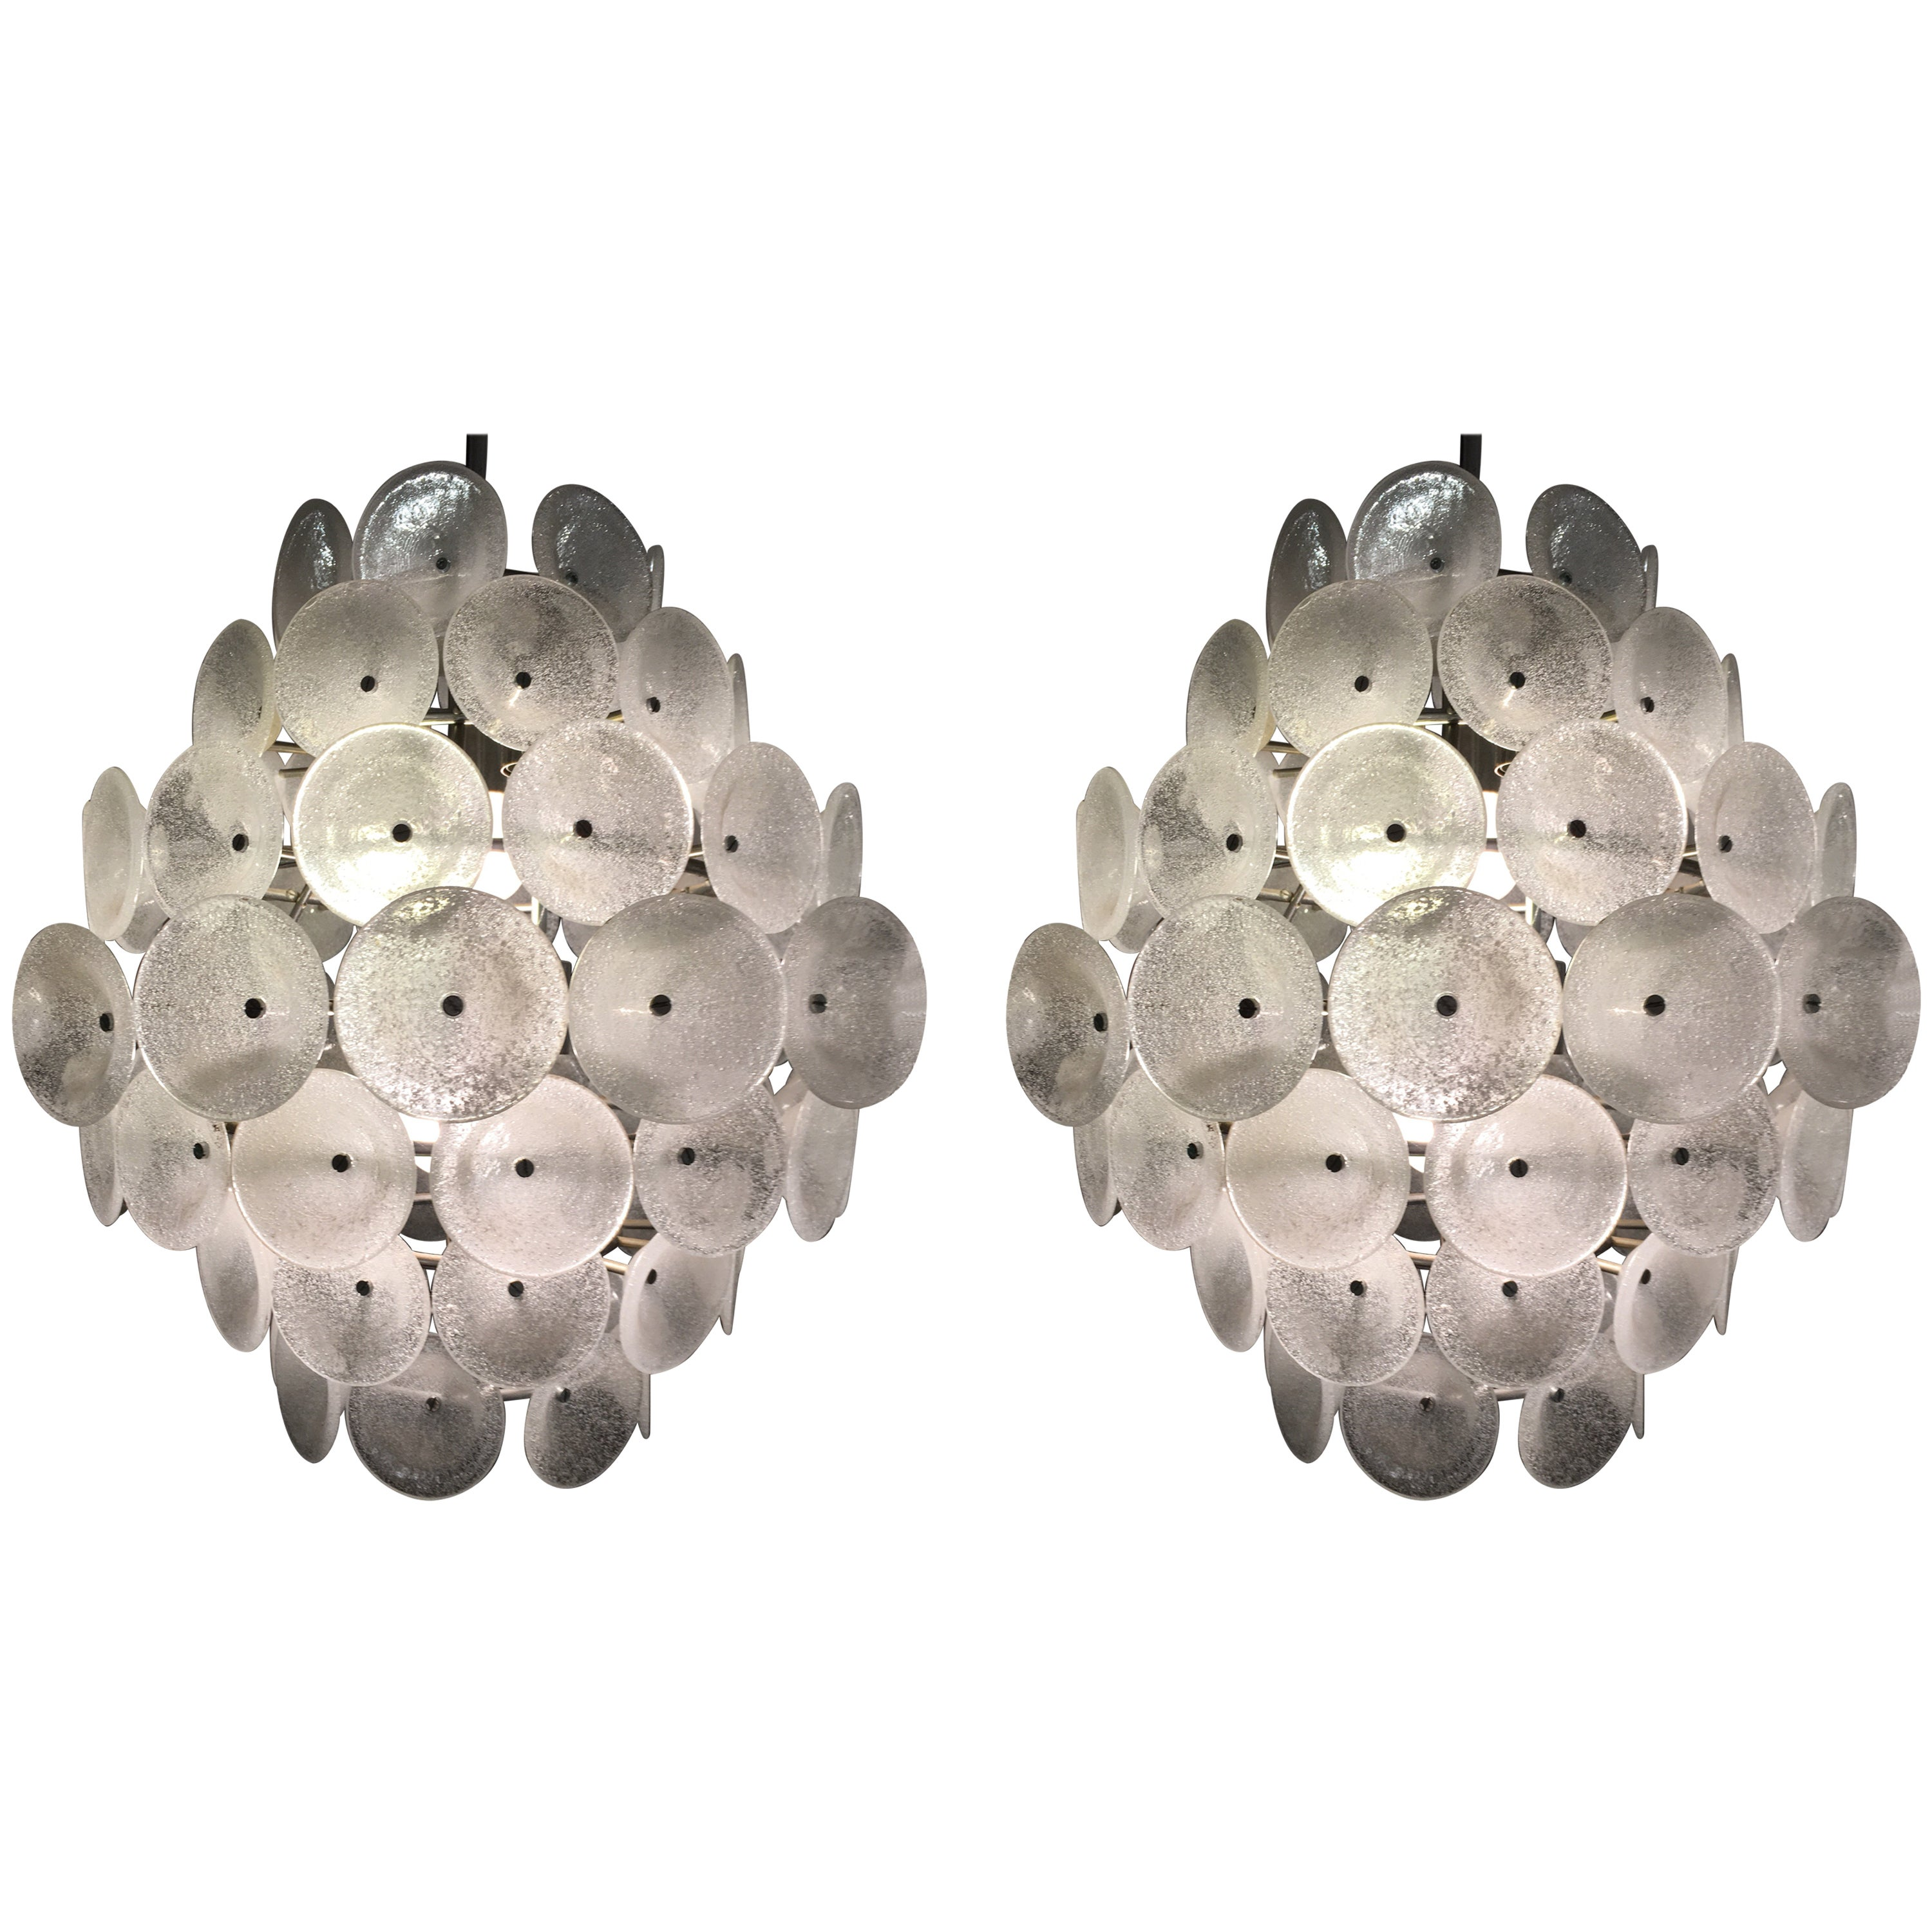 Set of Two Large Murano Discs Chandeliers, 1960s,Italy